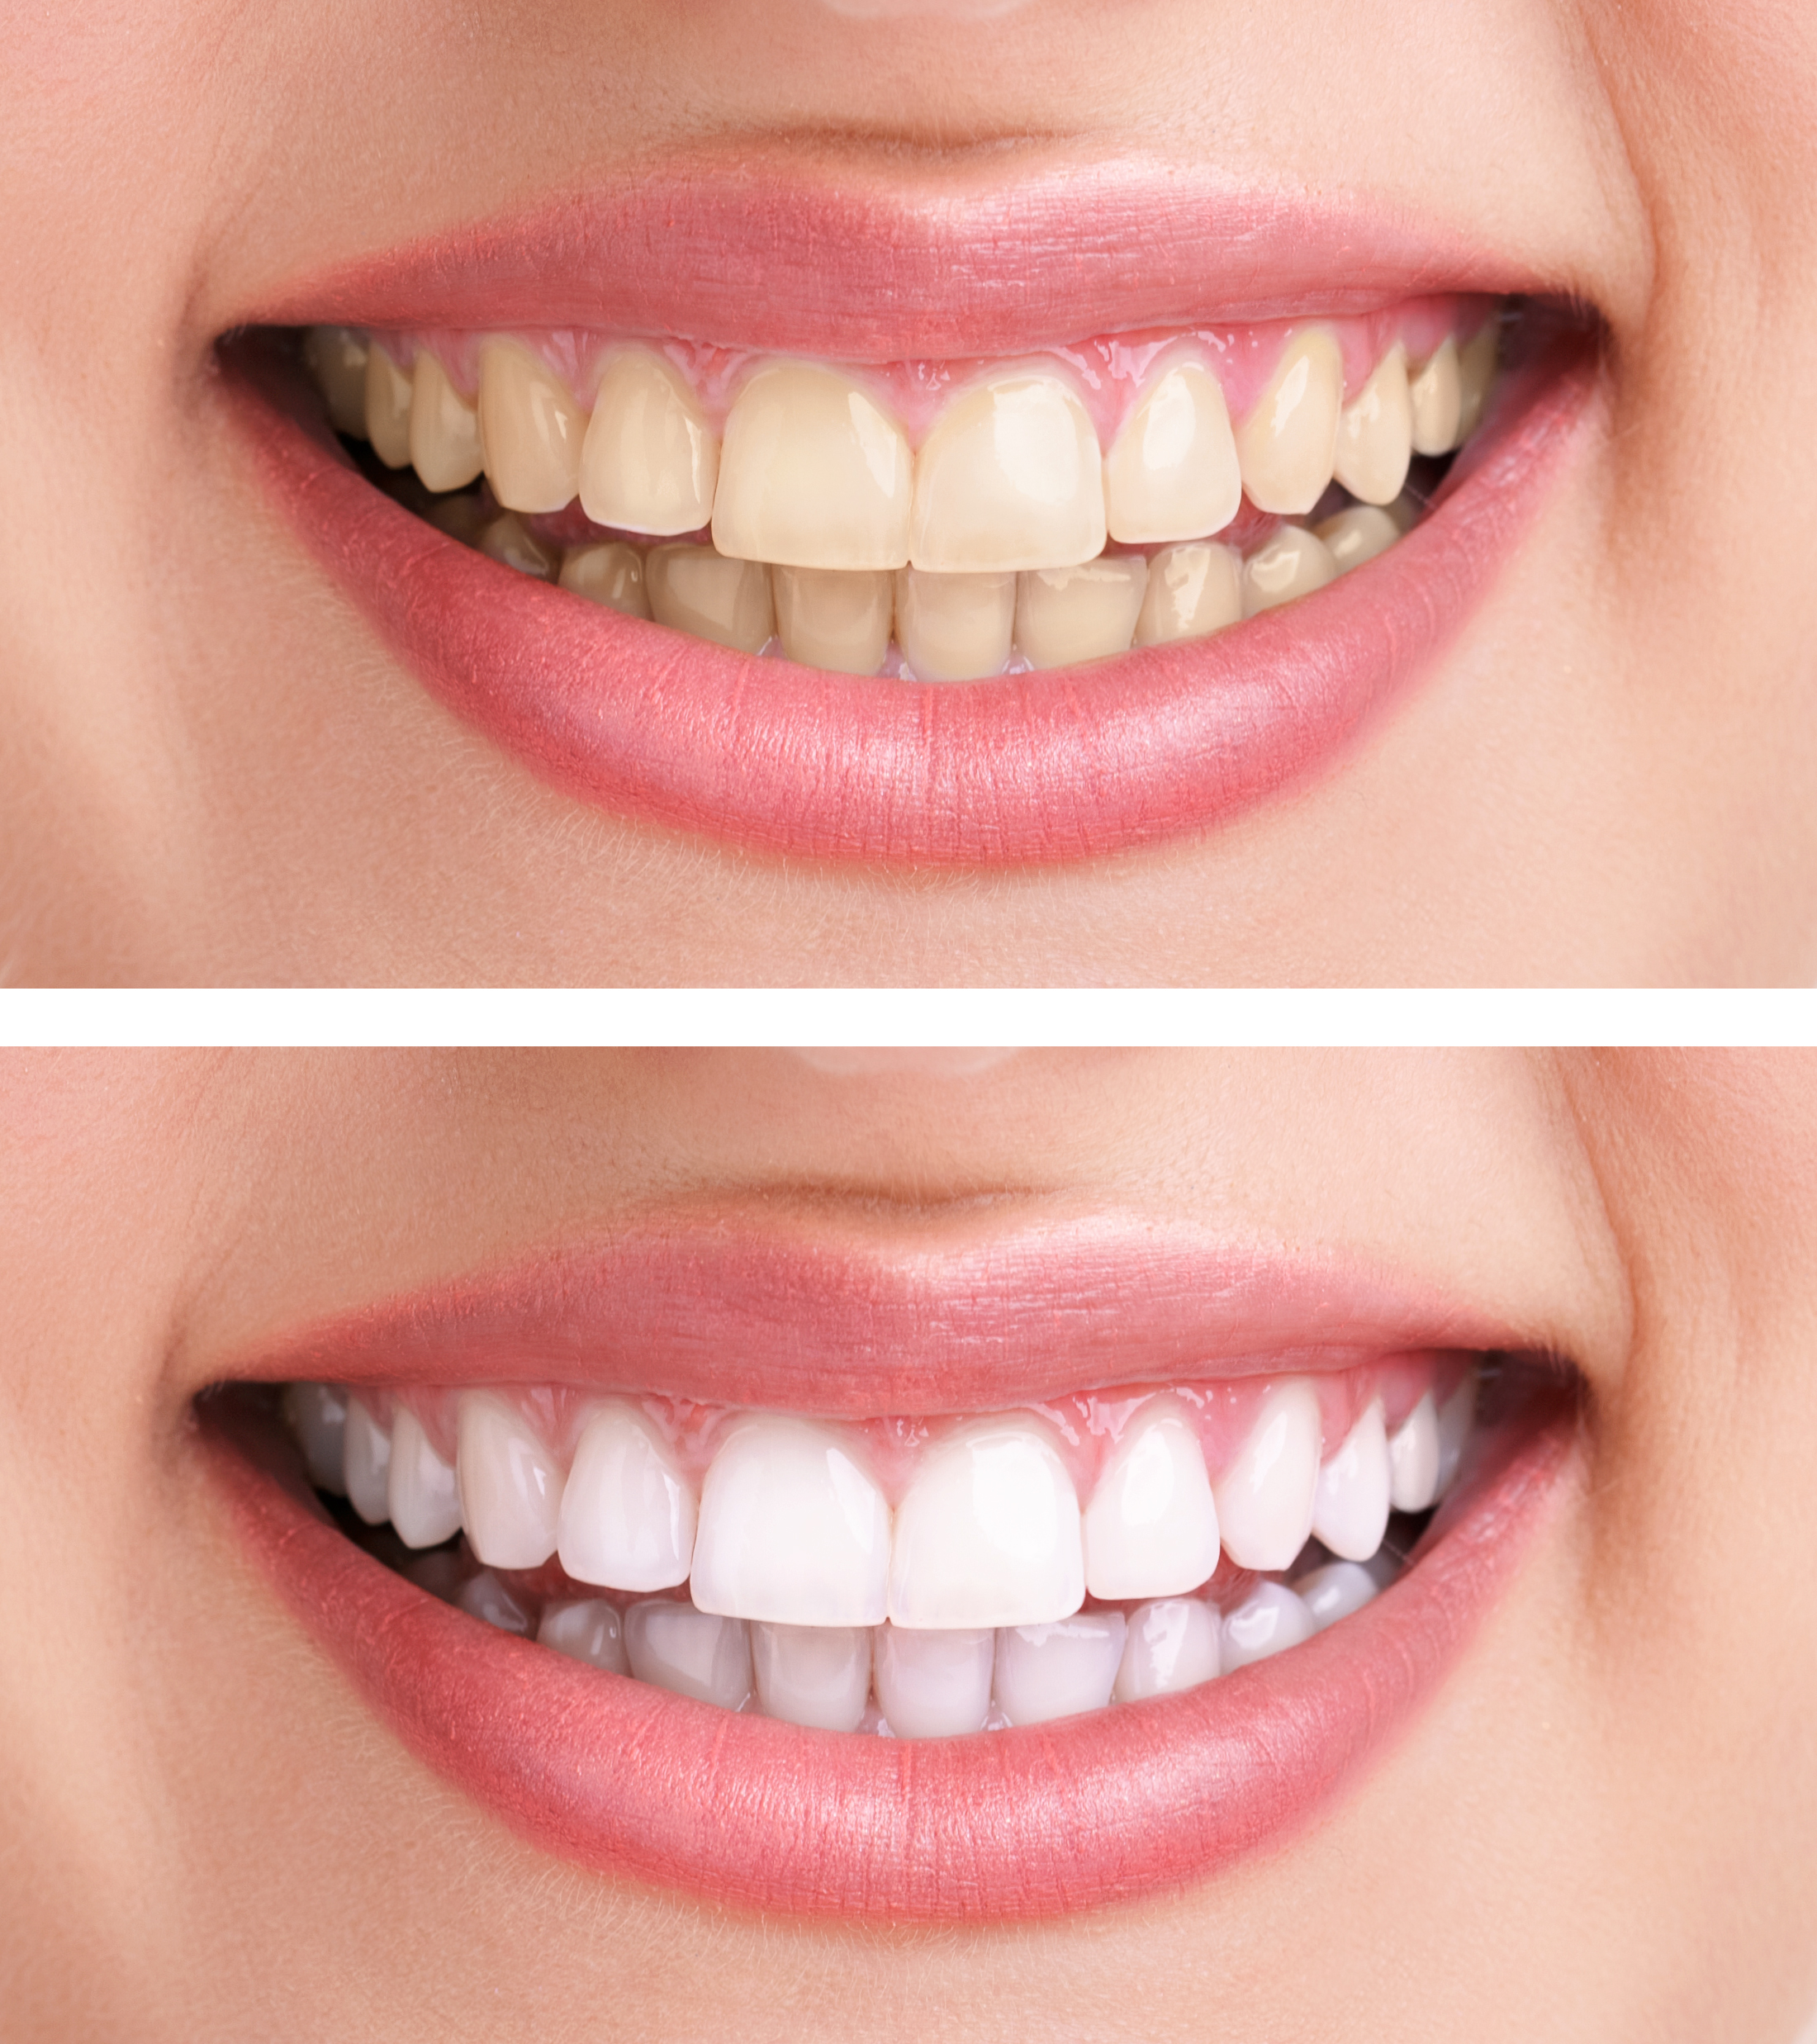 Top 7 Best Whitening Toothpaste Options All Her Things